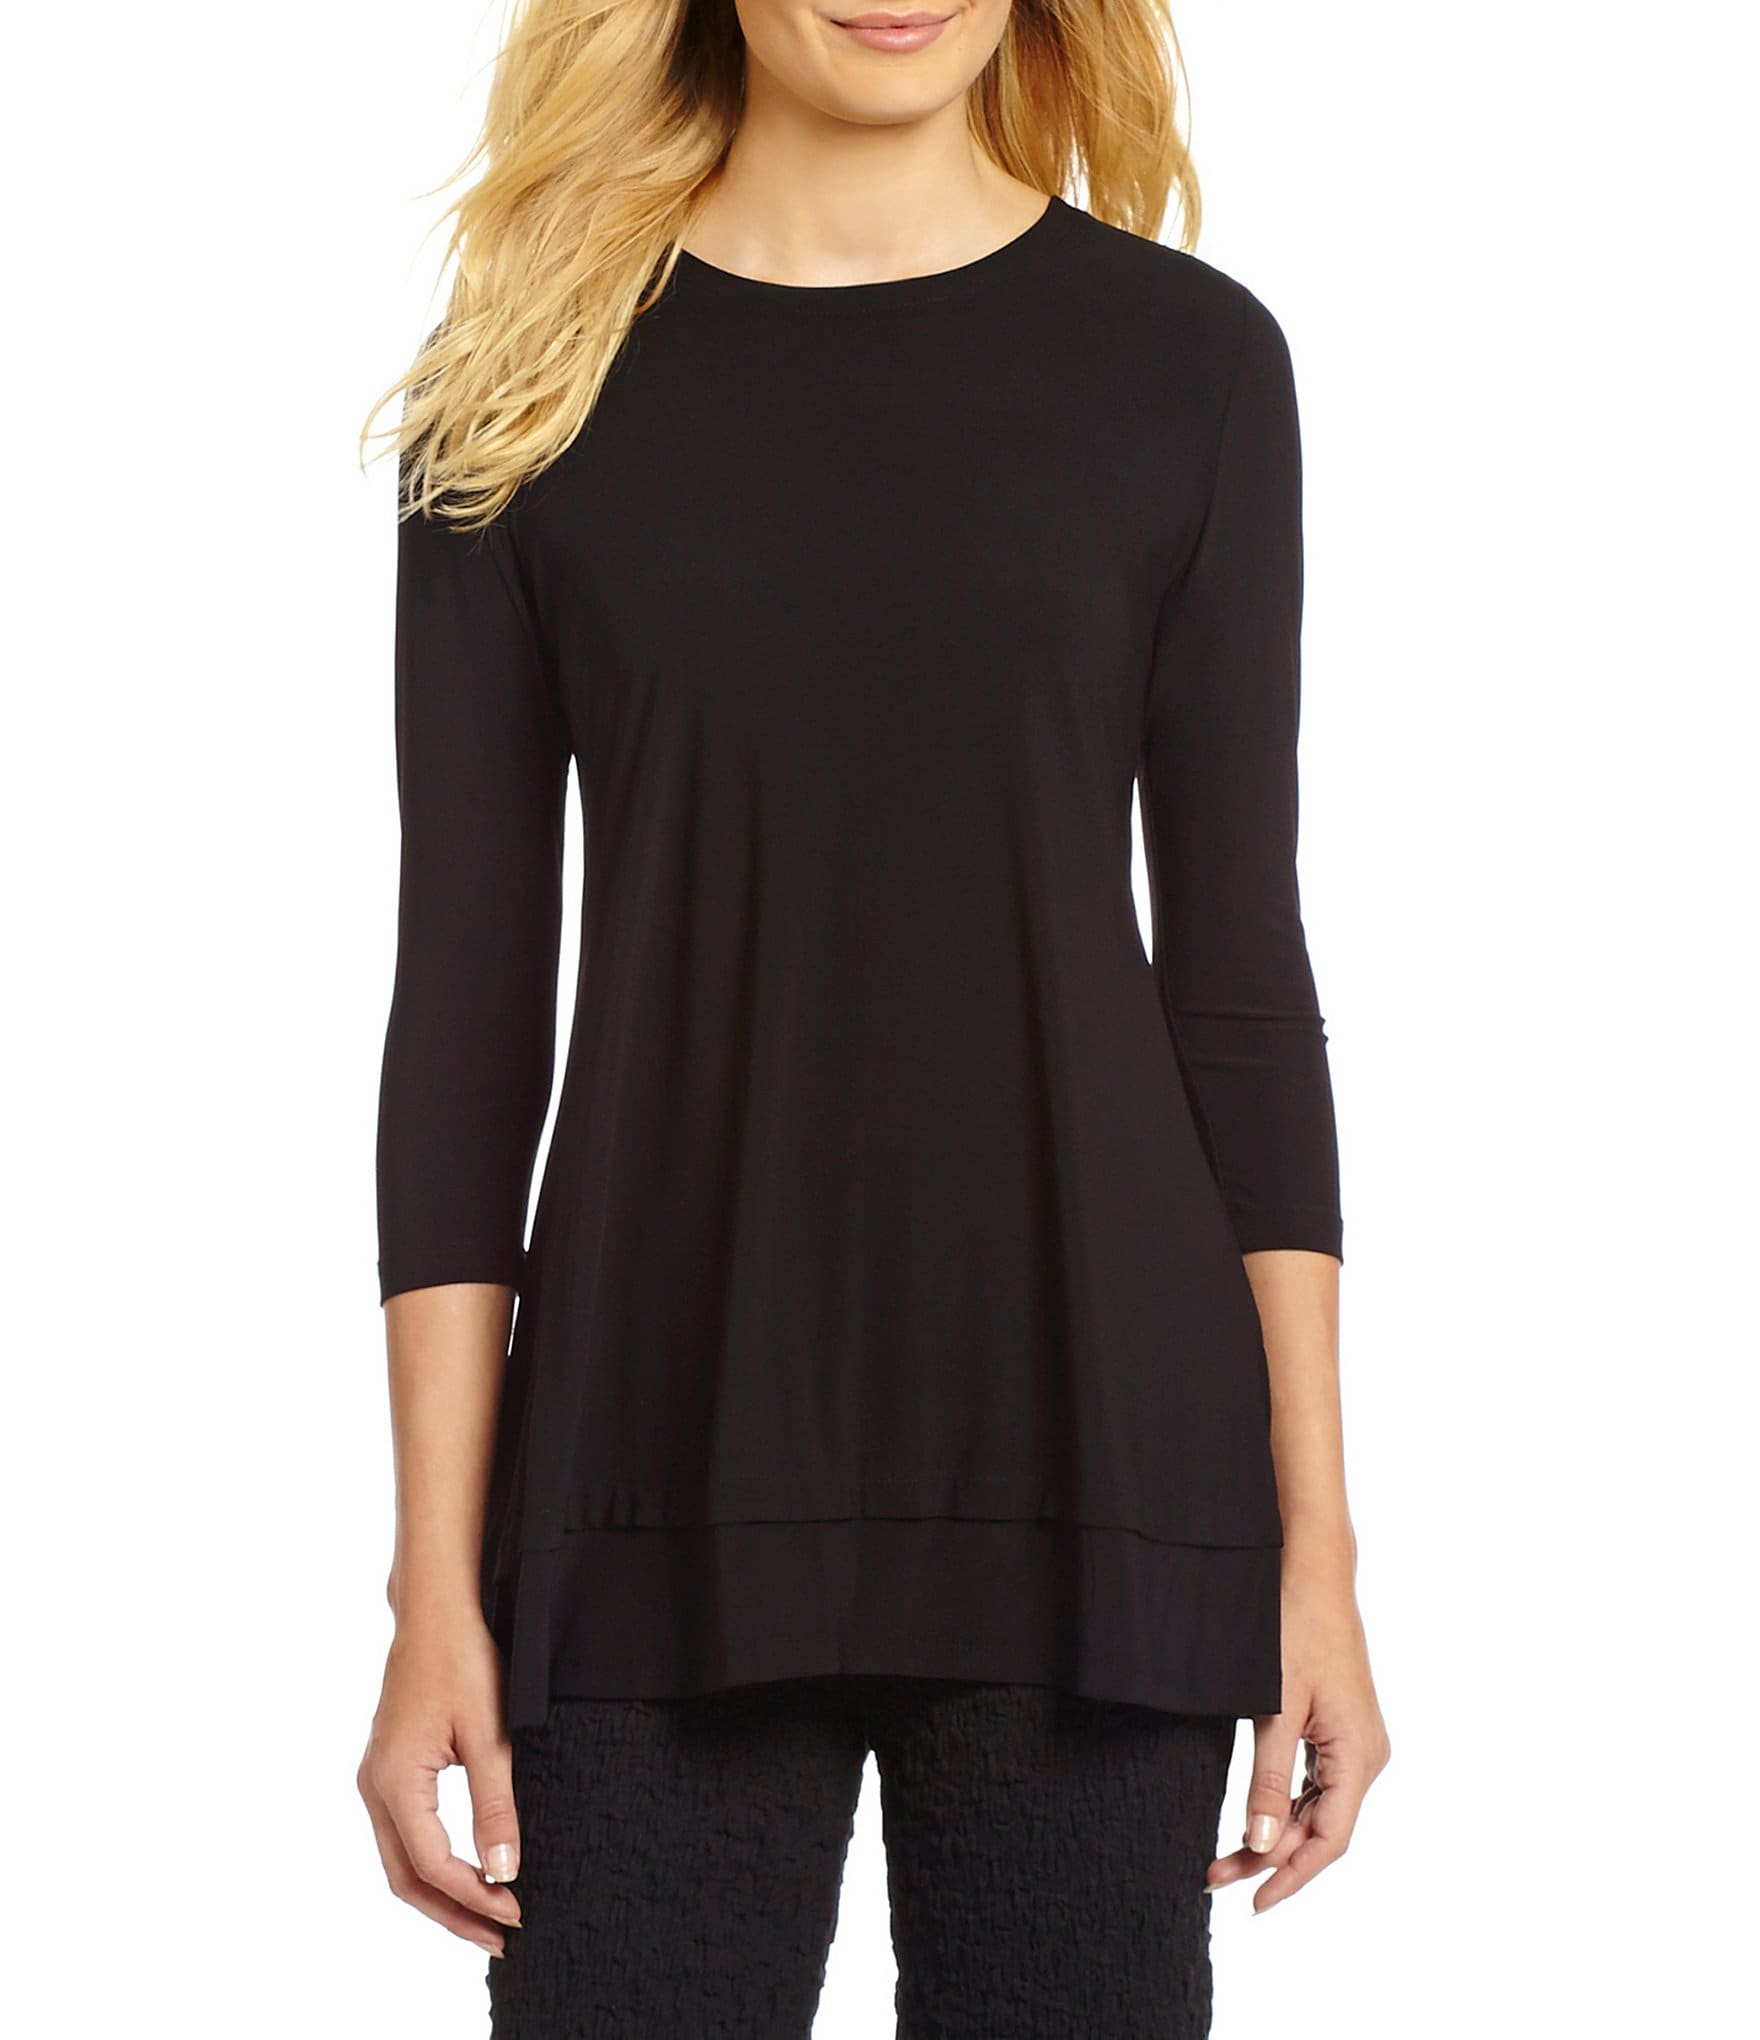 IC Collection Women\'s Clothing | Dillards.com